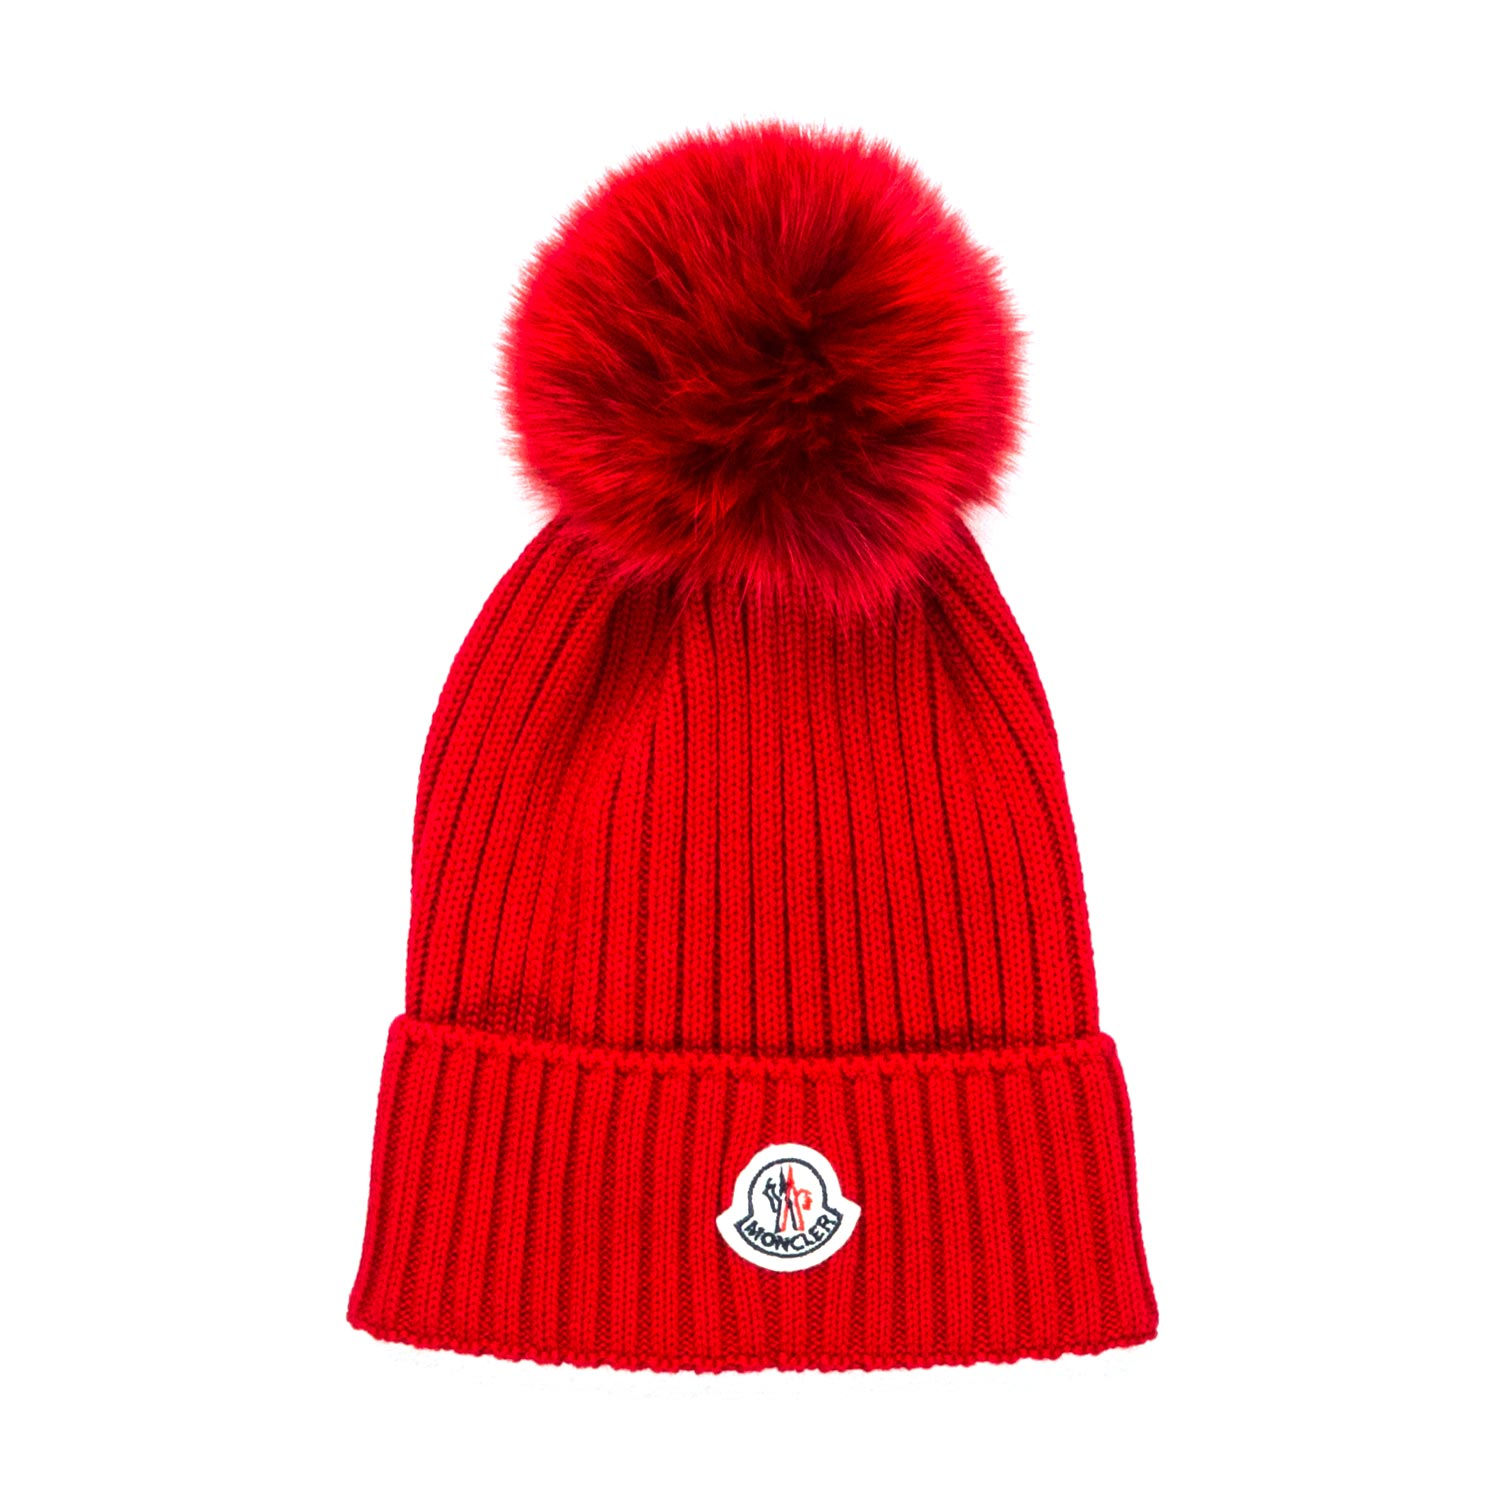 Home · MONCLER · Accessories hats headbands  Girl Red Knitted Bobble Hat.  26401-moncler cappello pon pon rosso girl-1.jpg 9f94211e604